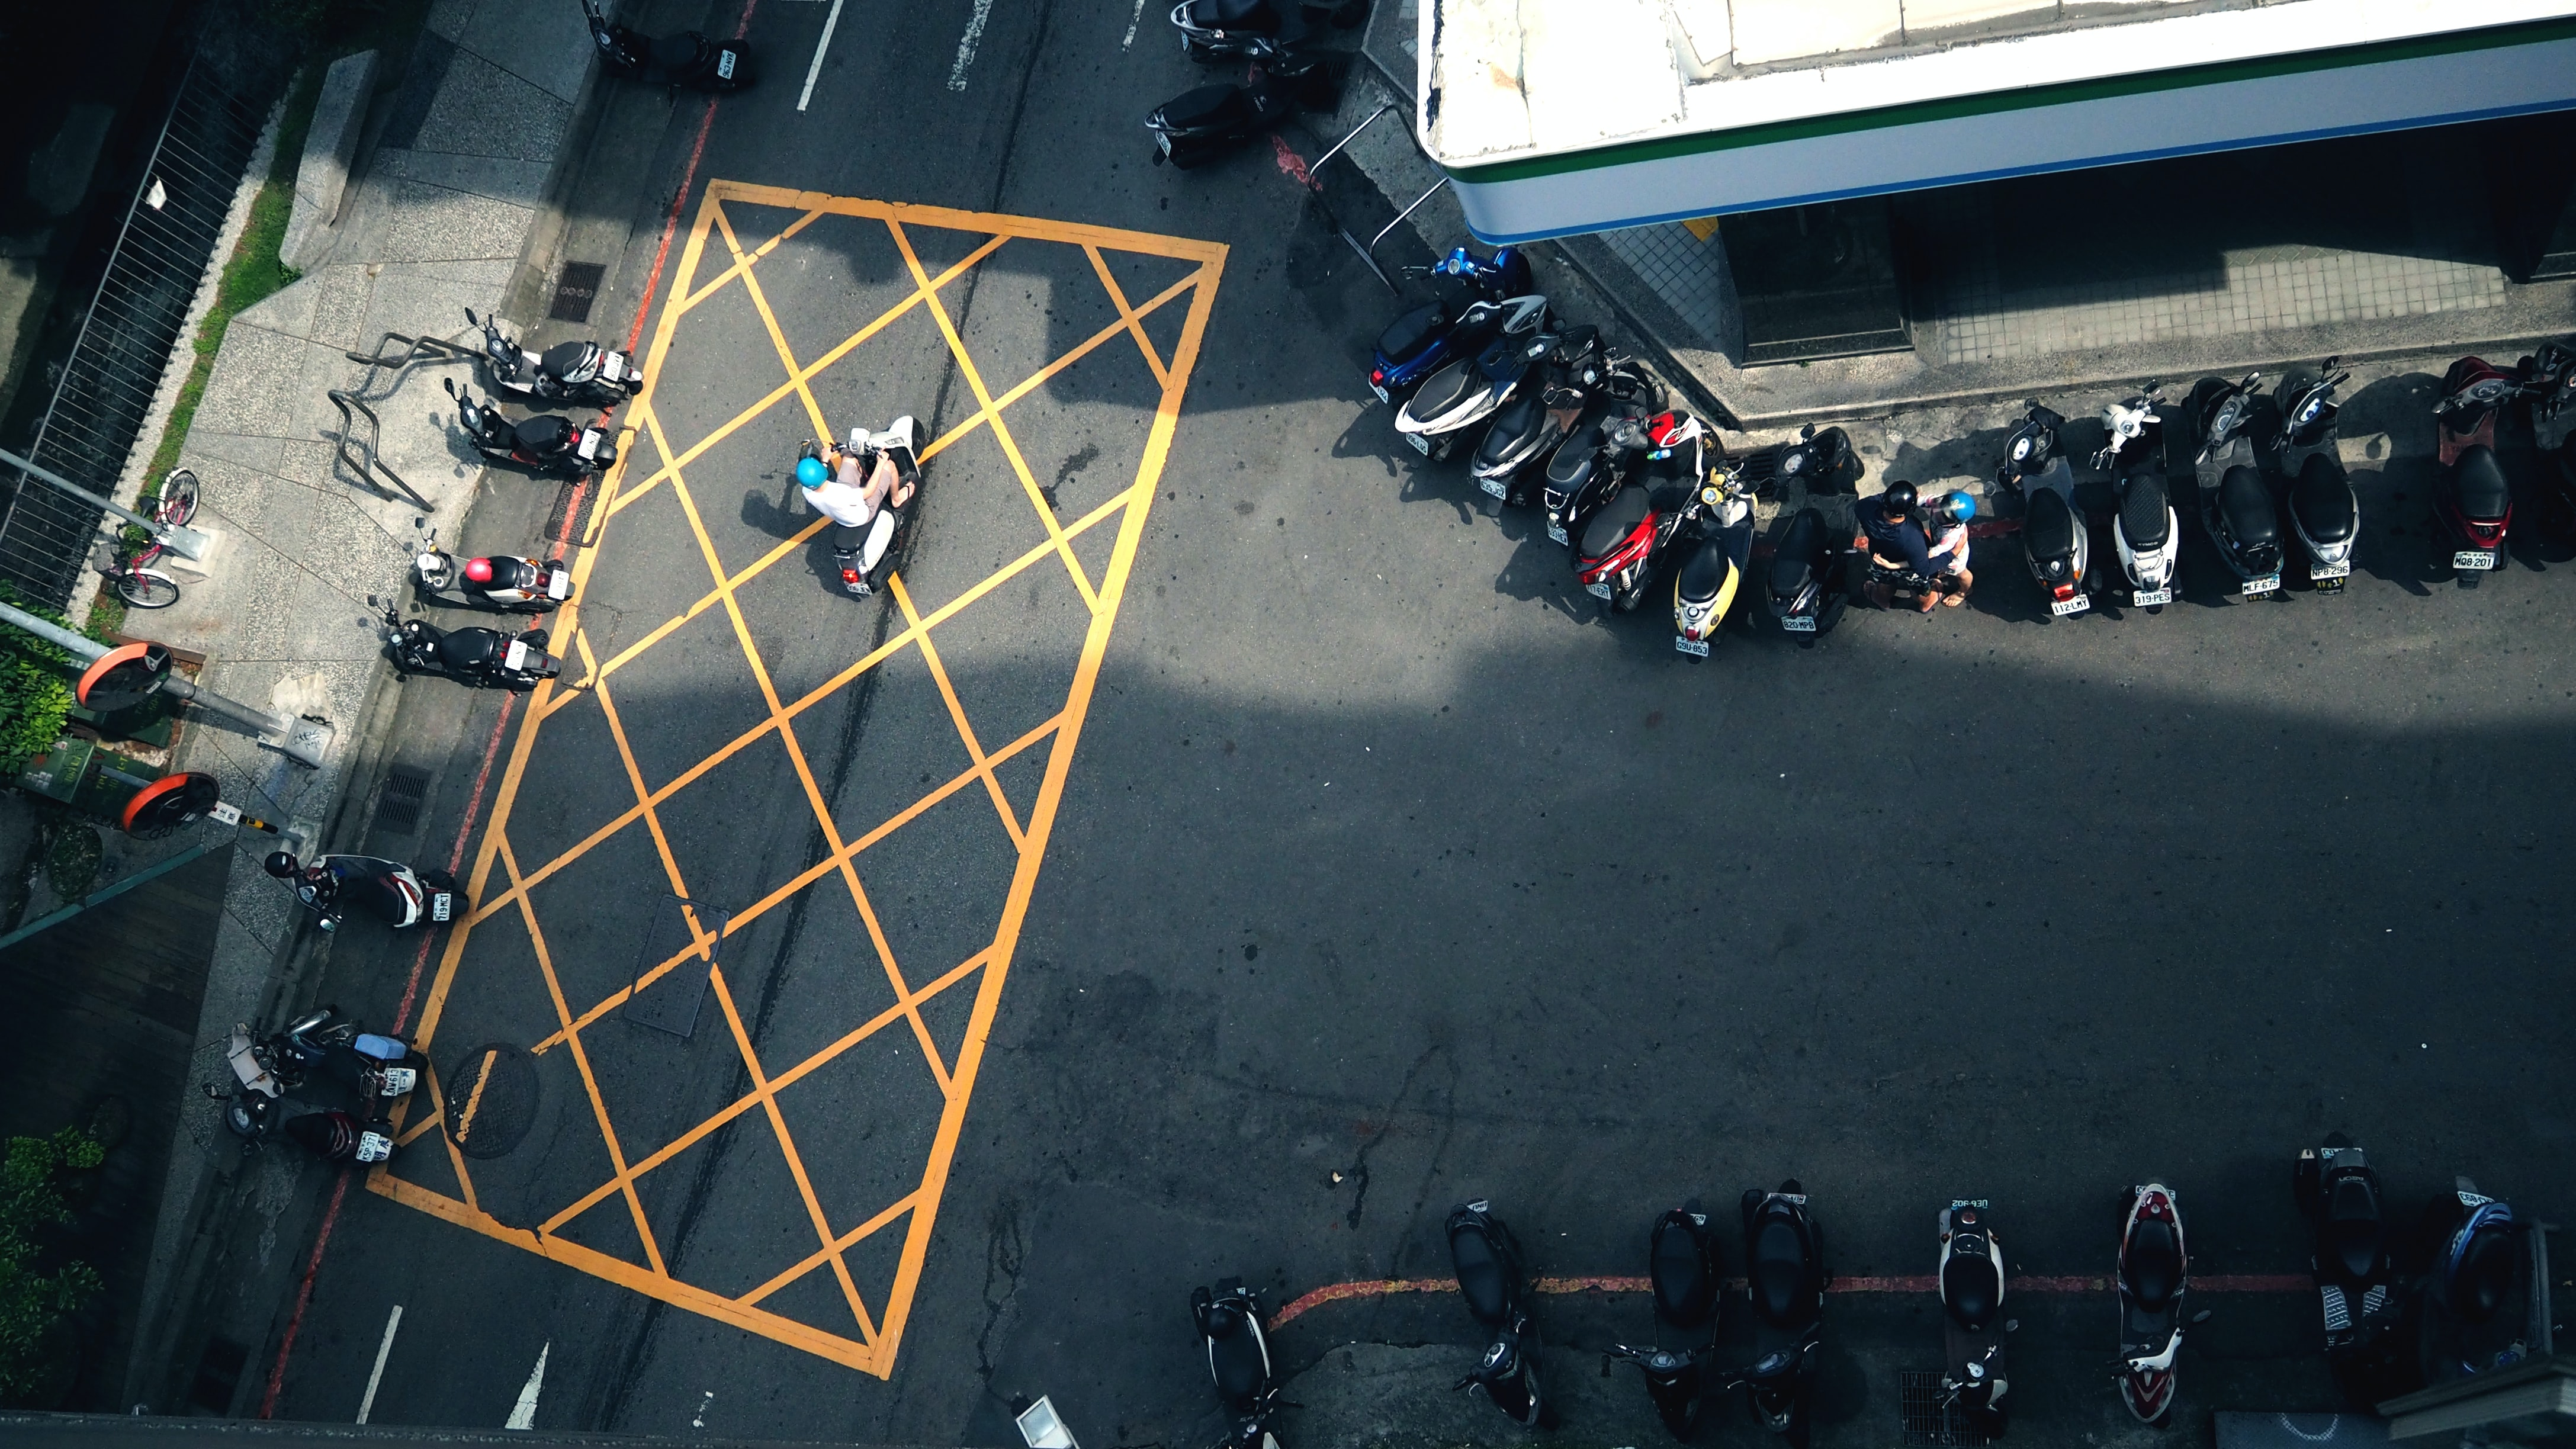 Drone view of street with buildings, sidewalks, and rows of mopeds and scooters in urban area